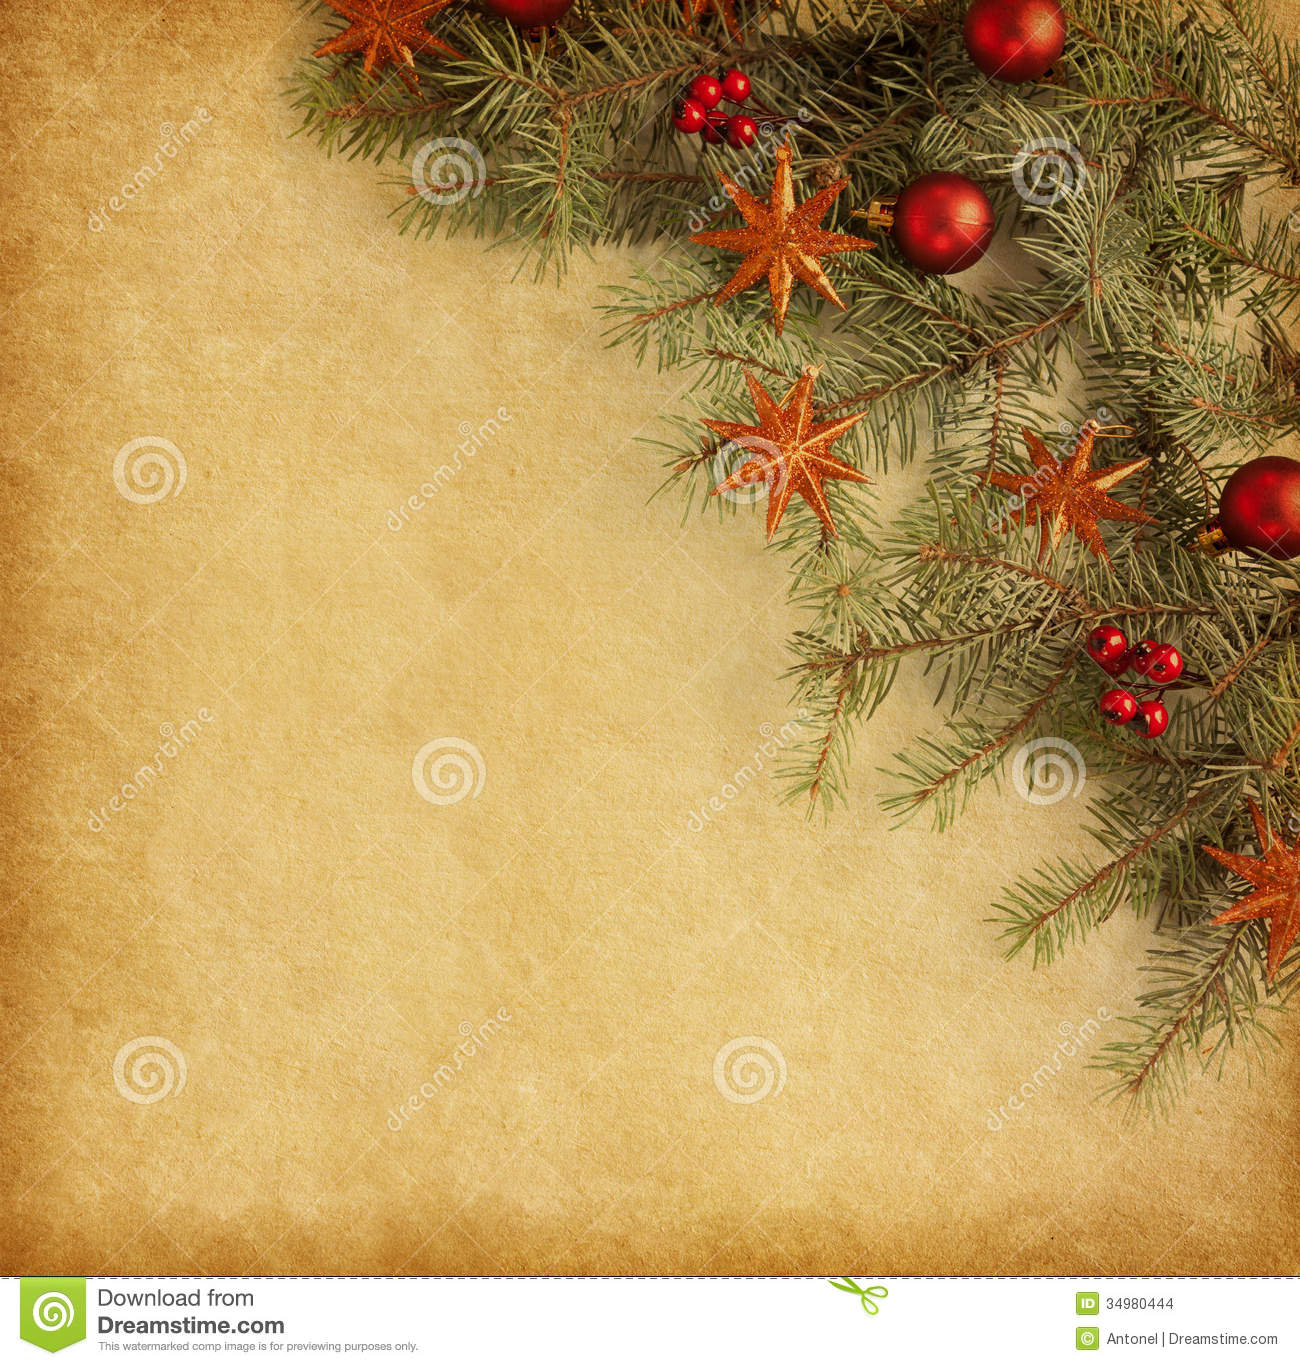 Vintage Christmas Background. Stock Photo - Image: 34980444